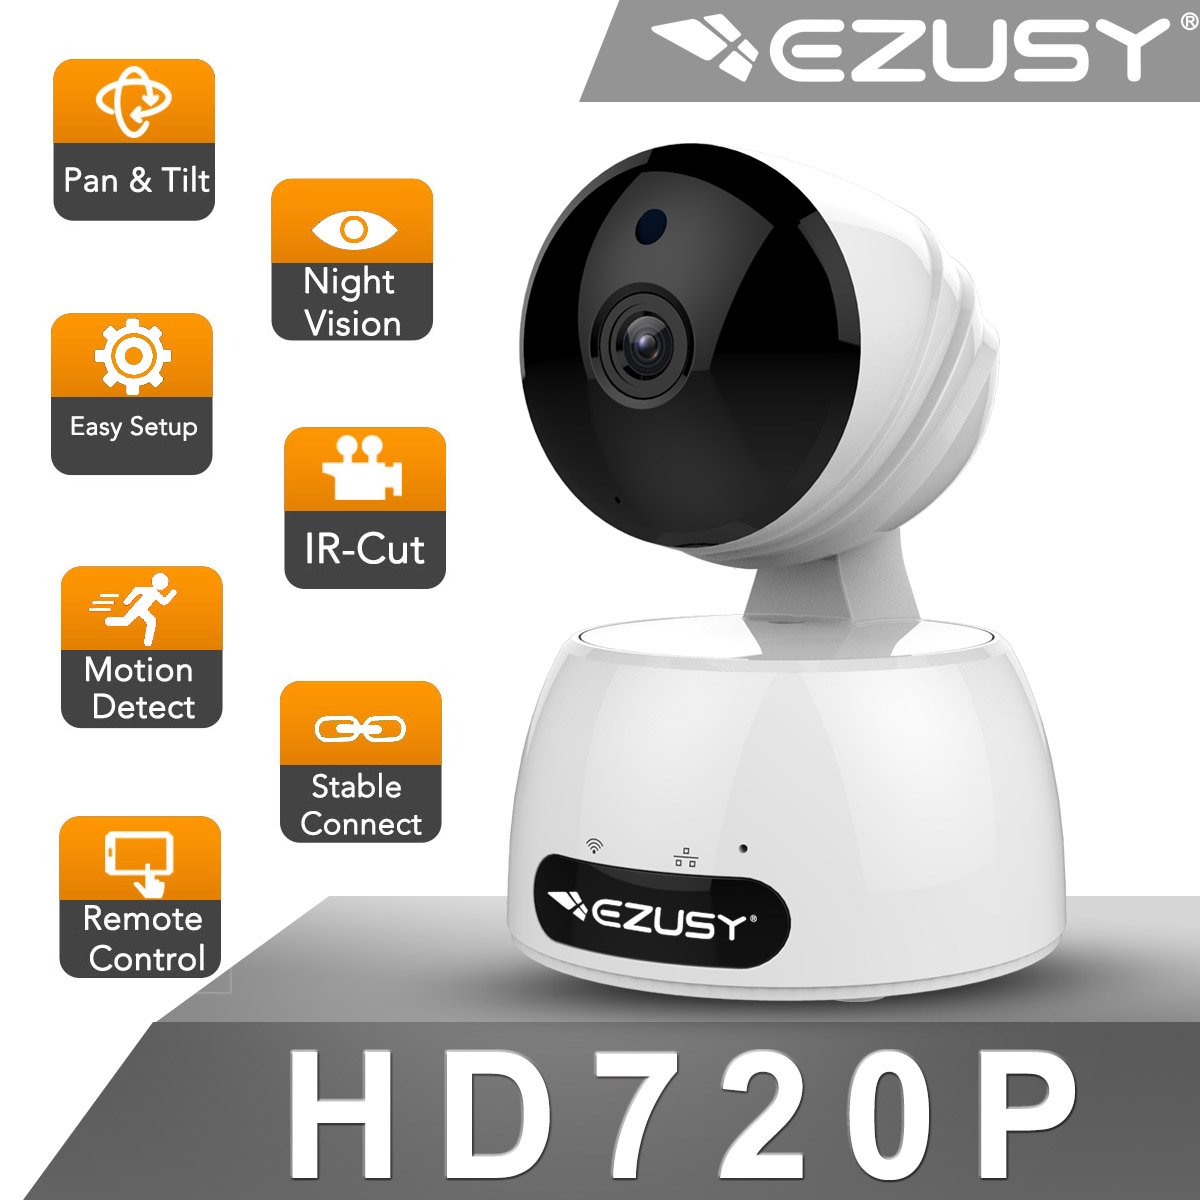 EZUSY 720P Wireless Security Camera, HD WiFi Security Surveillance IP Camera Home Monitor with Plug/Play, Pan/Tilt Motion Detection Two-Way Audio & Night Vision